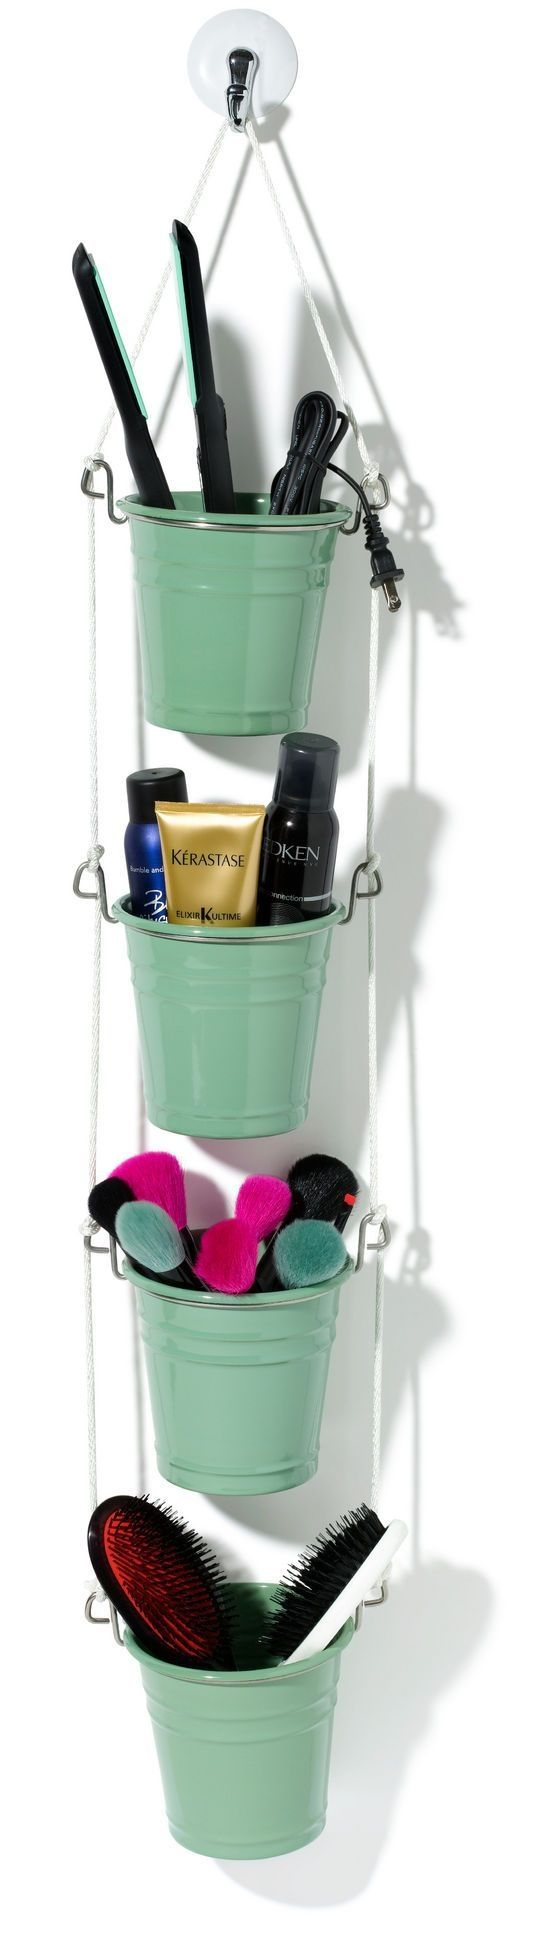 Hair Tool Organizer | 6 Dorm Room Closet Upgrades That Are Worth Your Time | http://www.hercampus.com/life/campus-life/6-dorm-room-closet-upgrades-are-worth-your-time